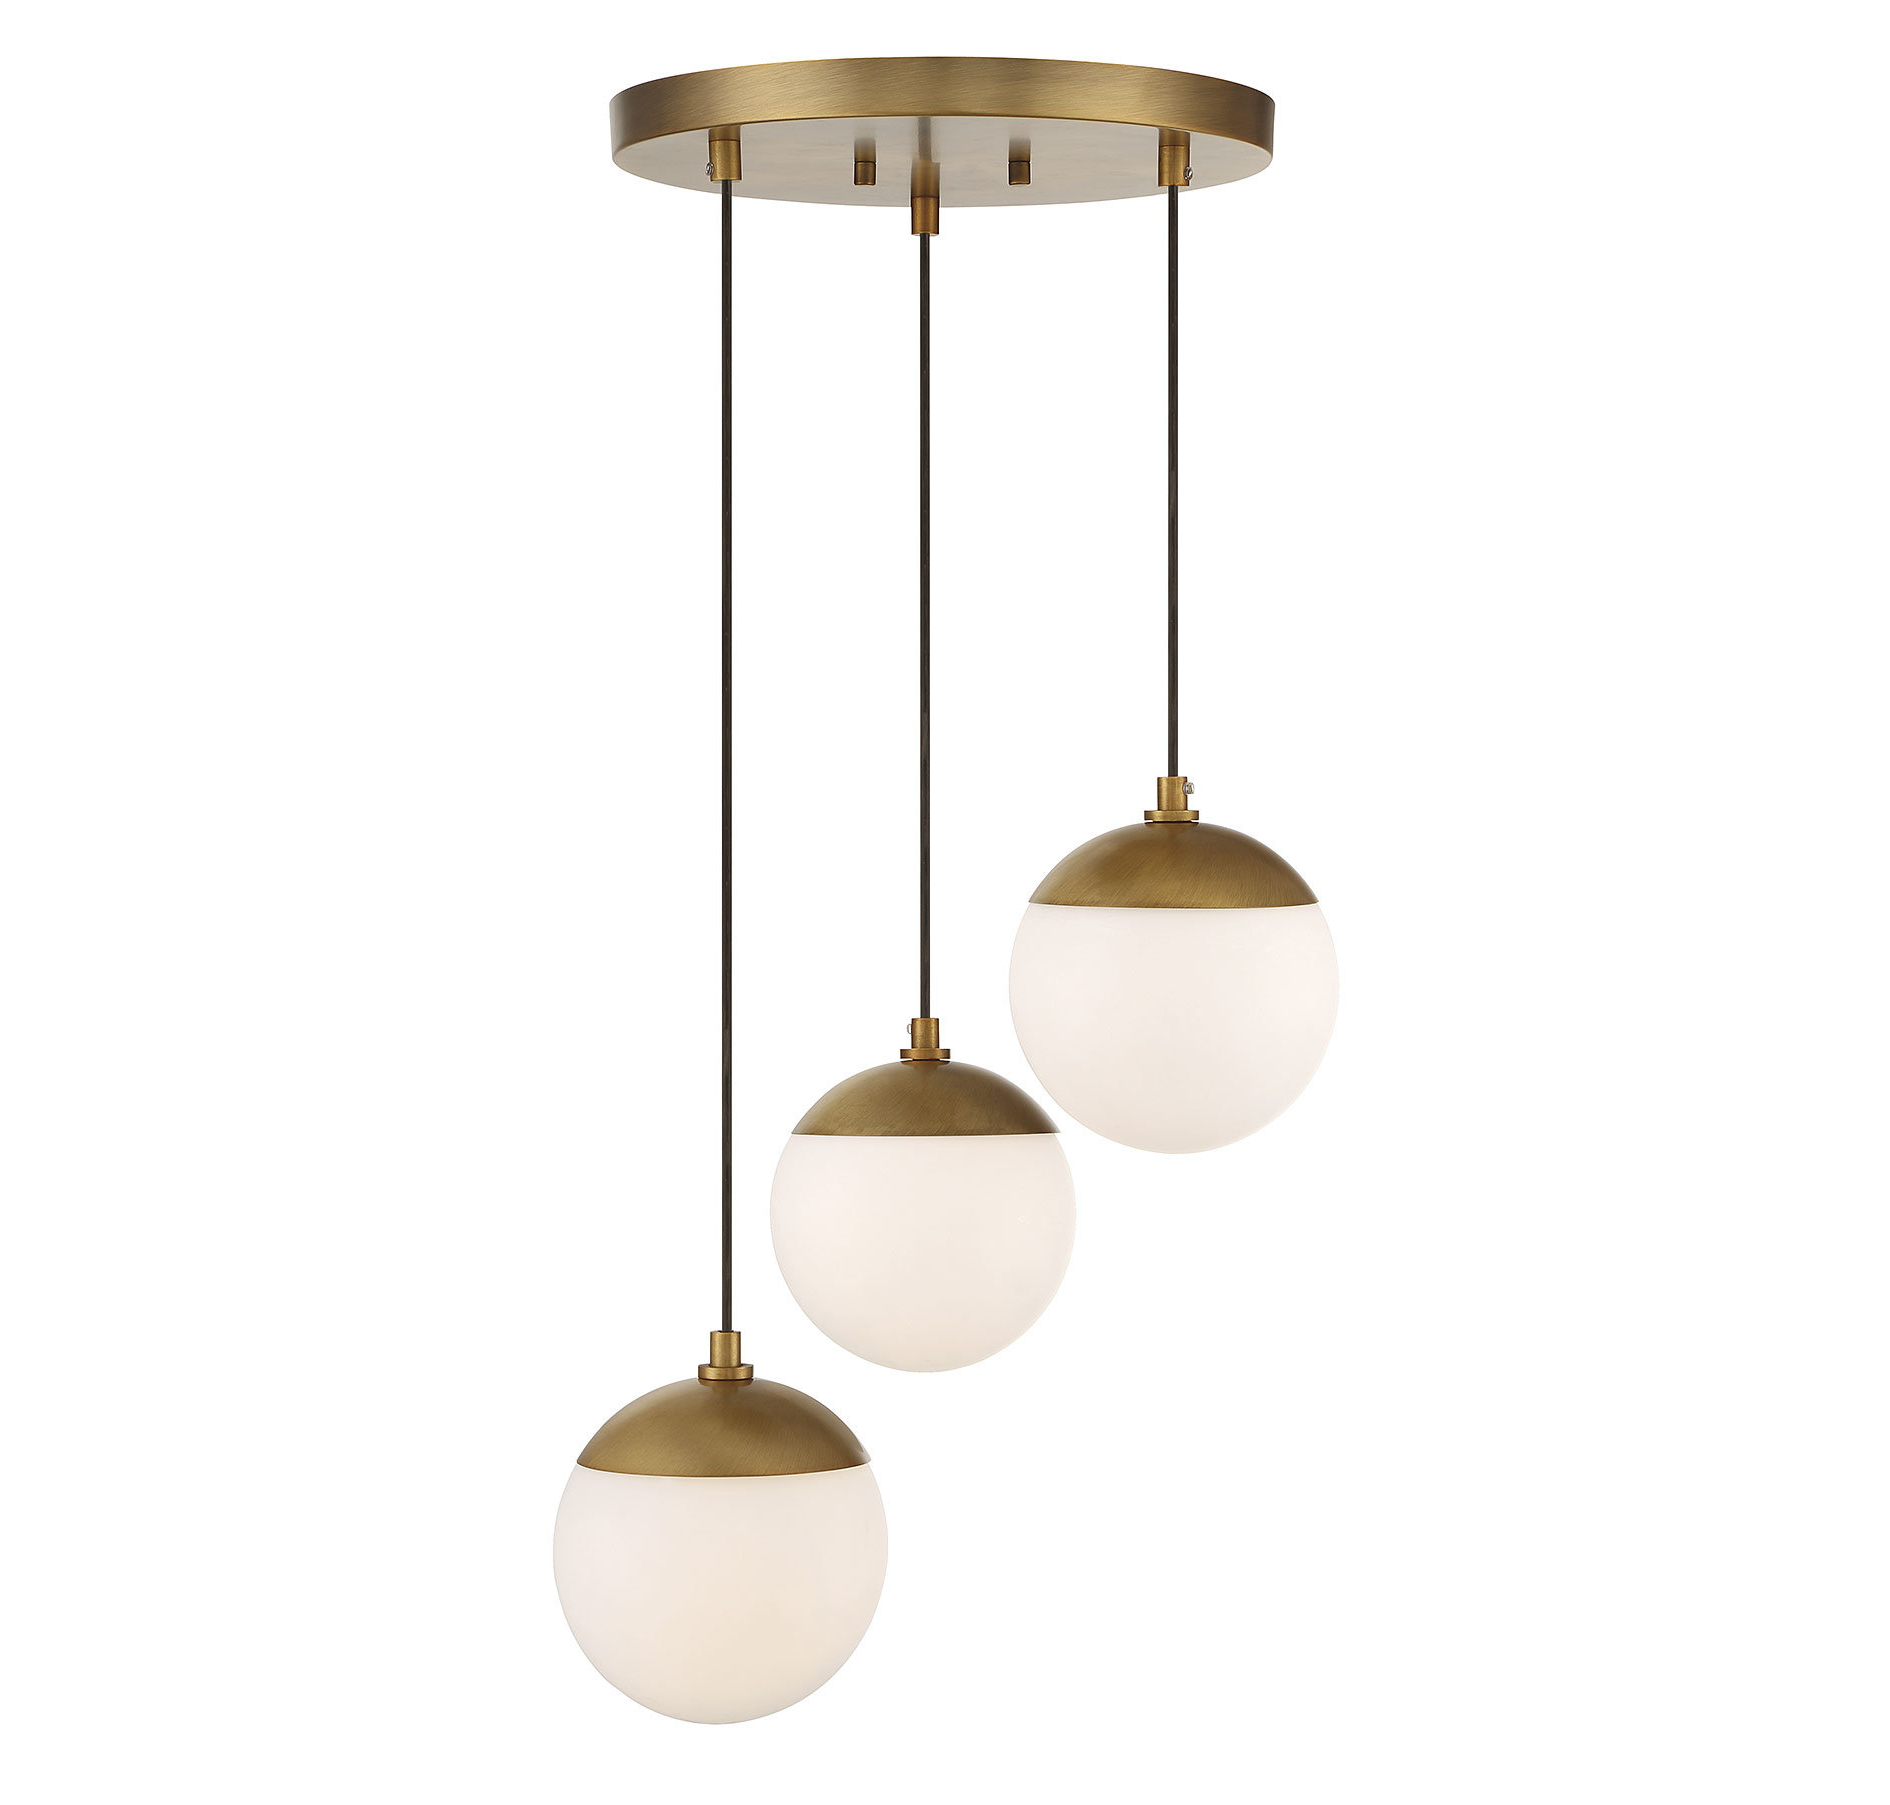 Berenice 3 Light Cluster Teardrop Pendants Within Most Recently Released Kara 3 Light Cluster Globe Pendant (View 8 of 20)